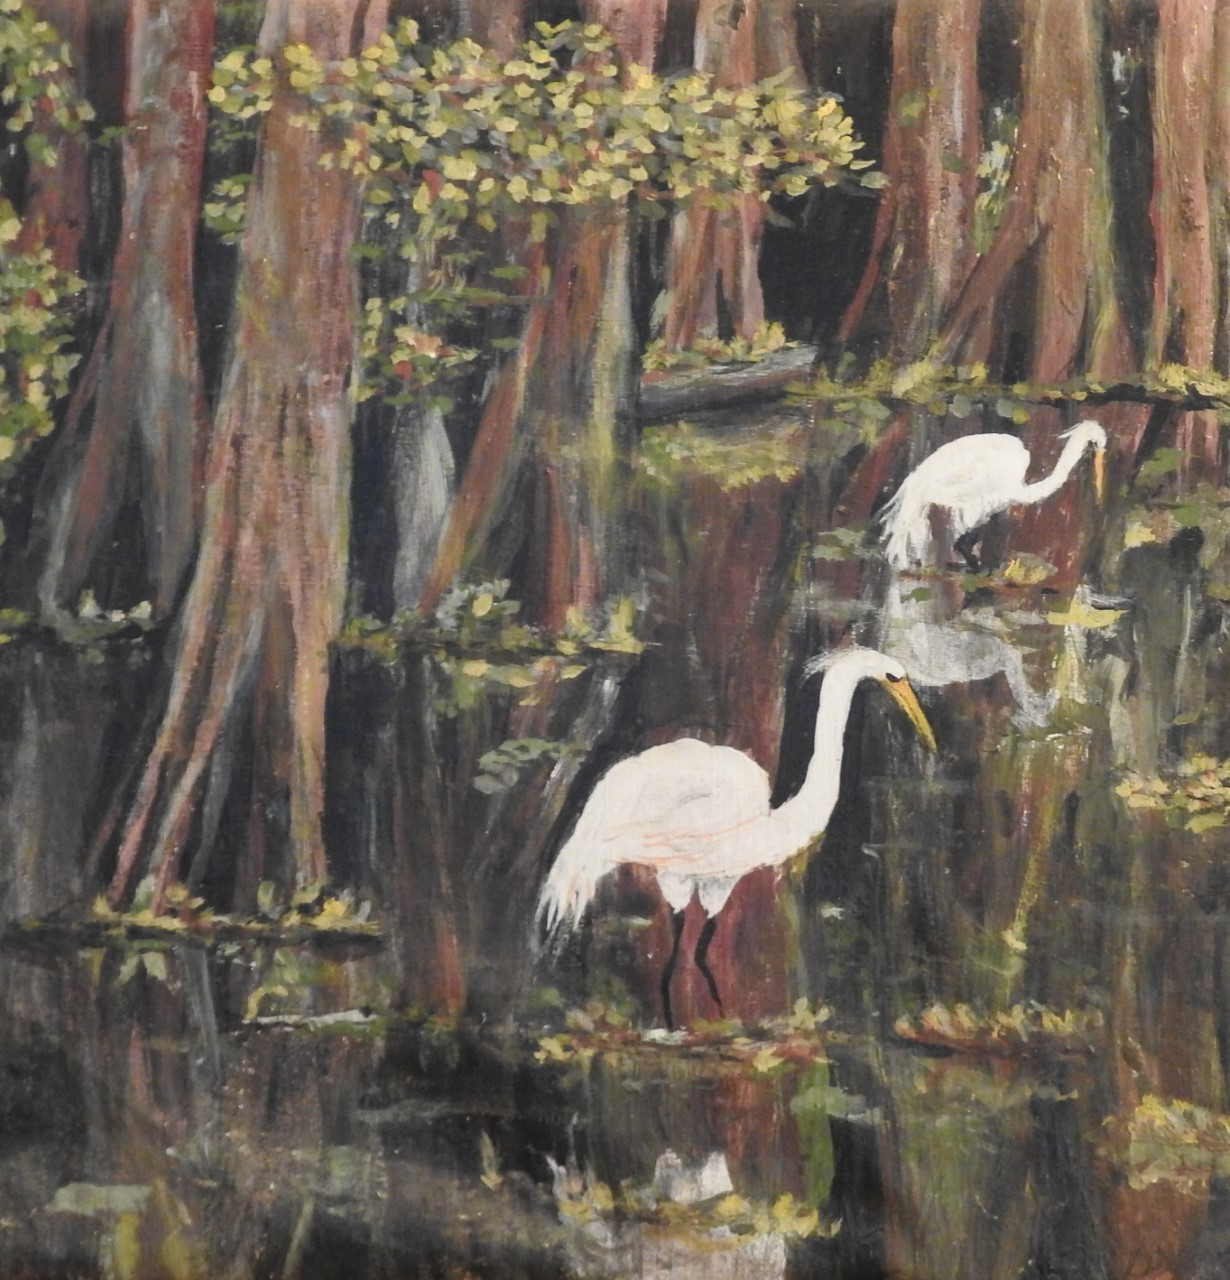 Egrets in a Cypress Swamp painted in Lexington, Ky